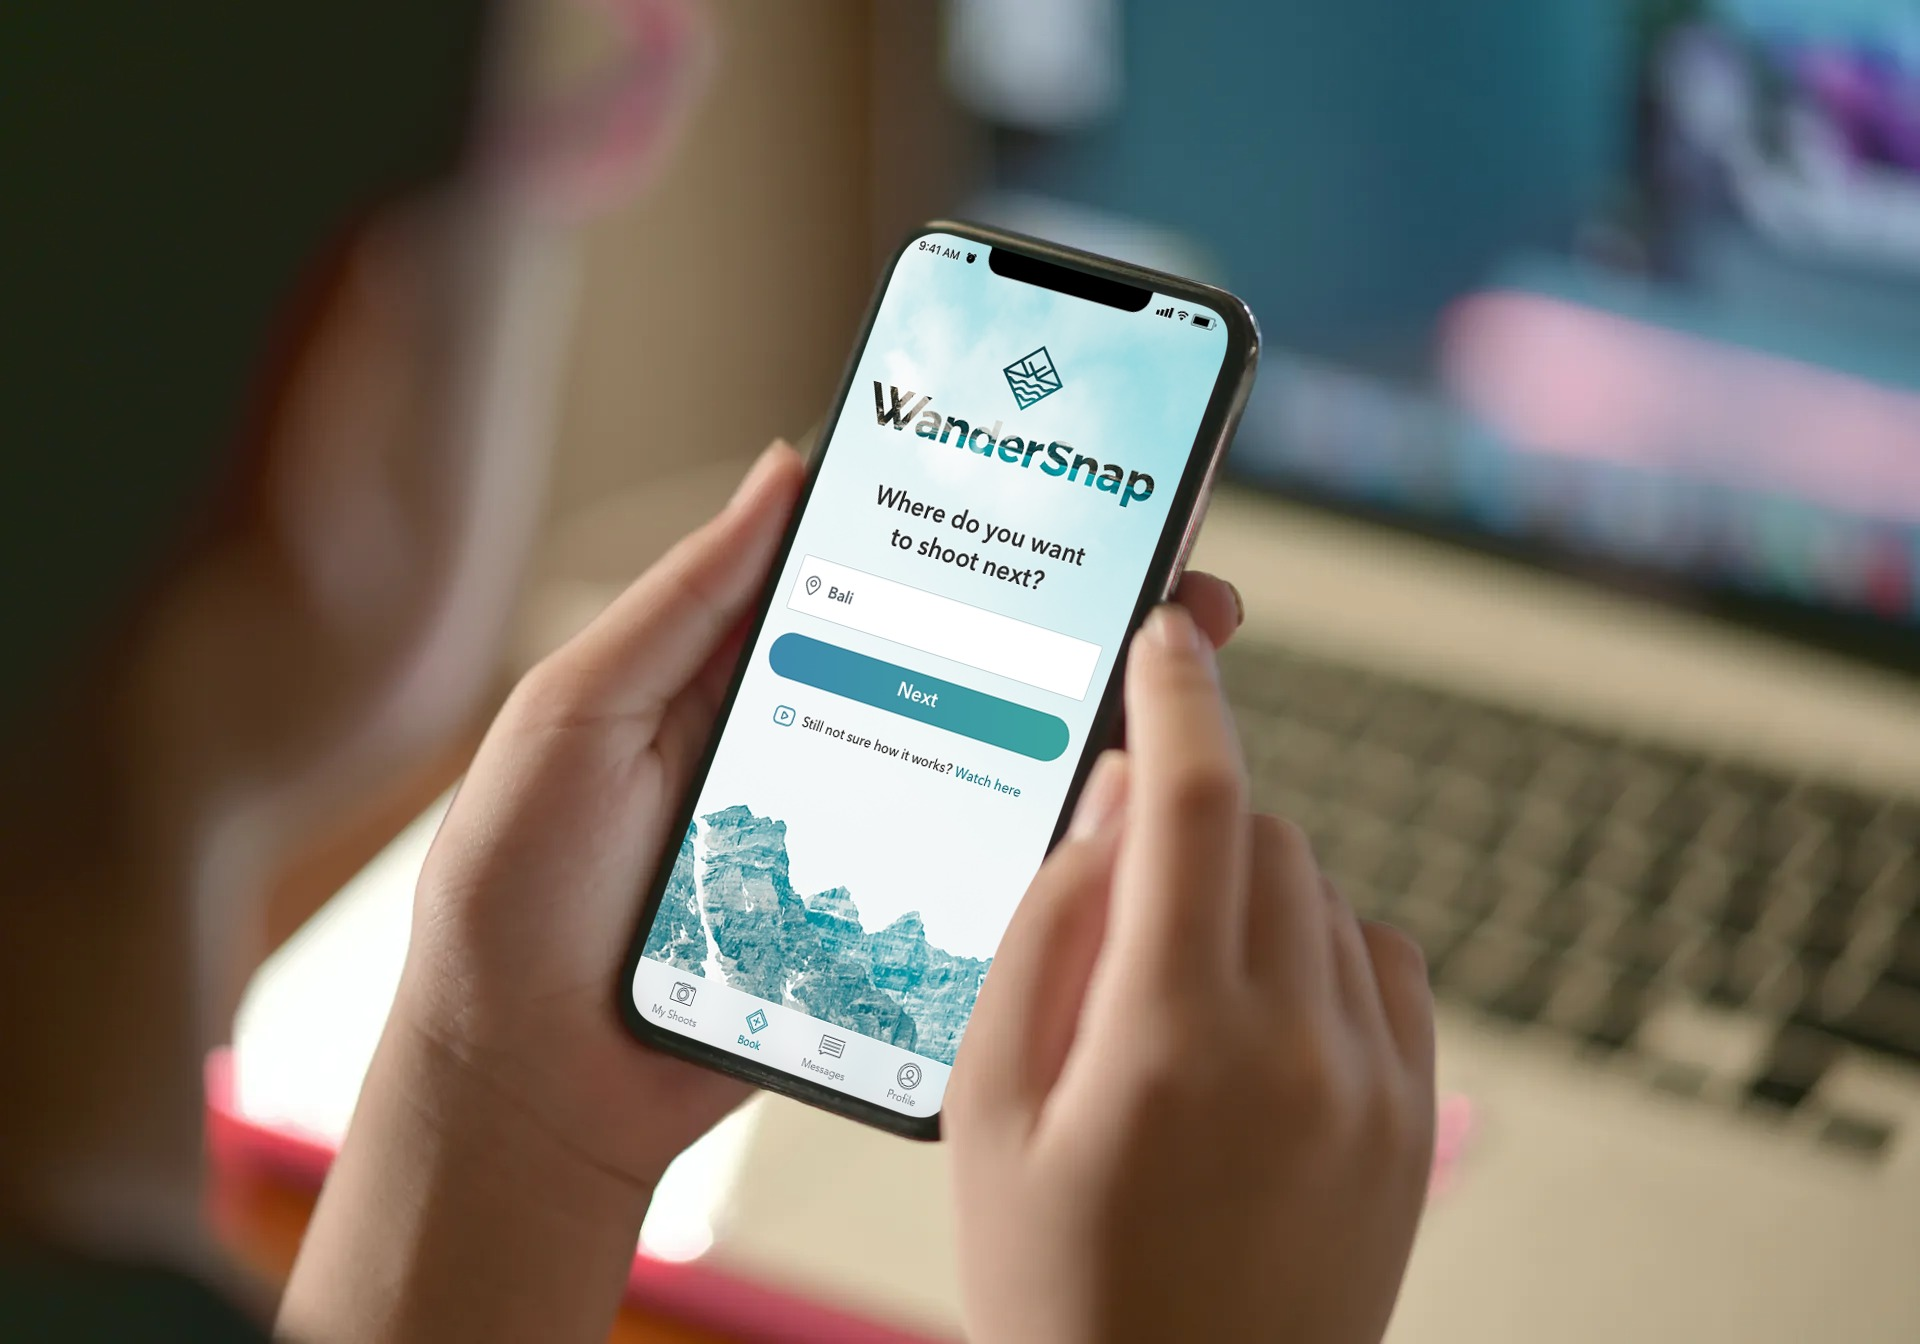 WanderSnap is an online platform where people can book photographers anywhere, currently focus on countries in Asia.